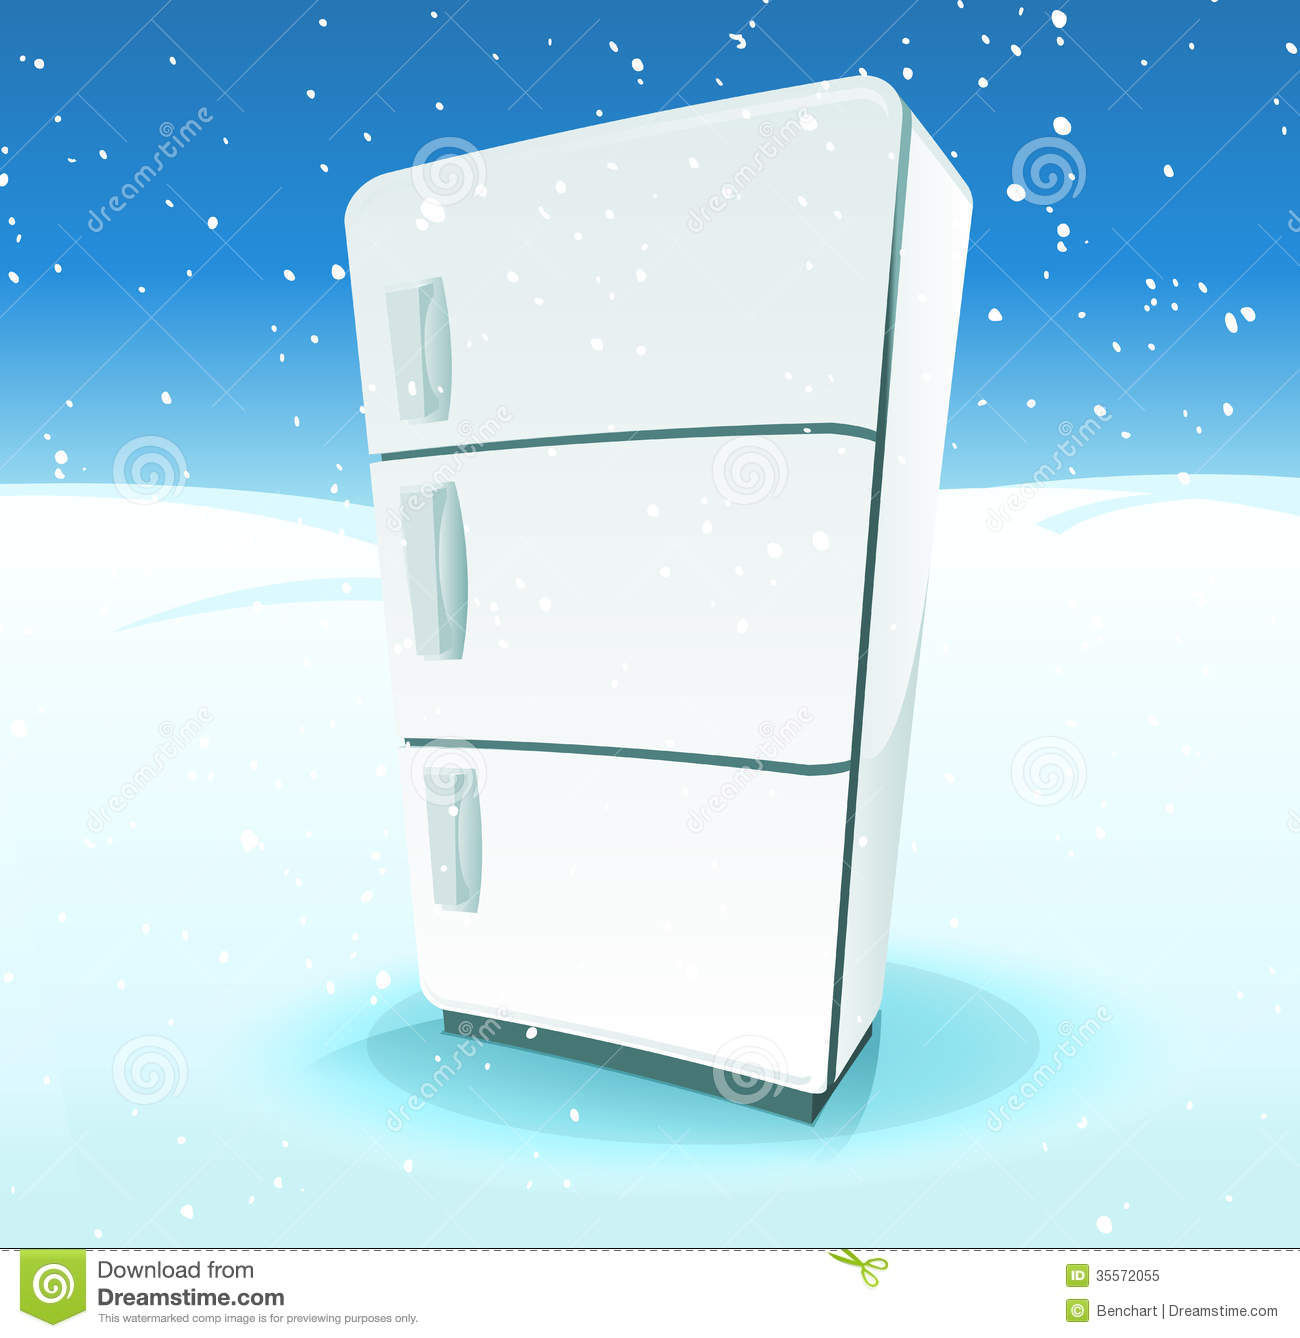 Dirty Refrigerator Clipart Fridge Inside North Pole